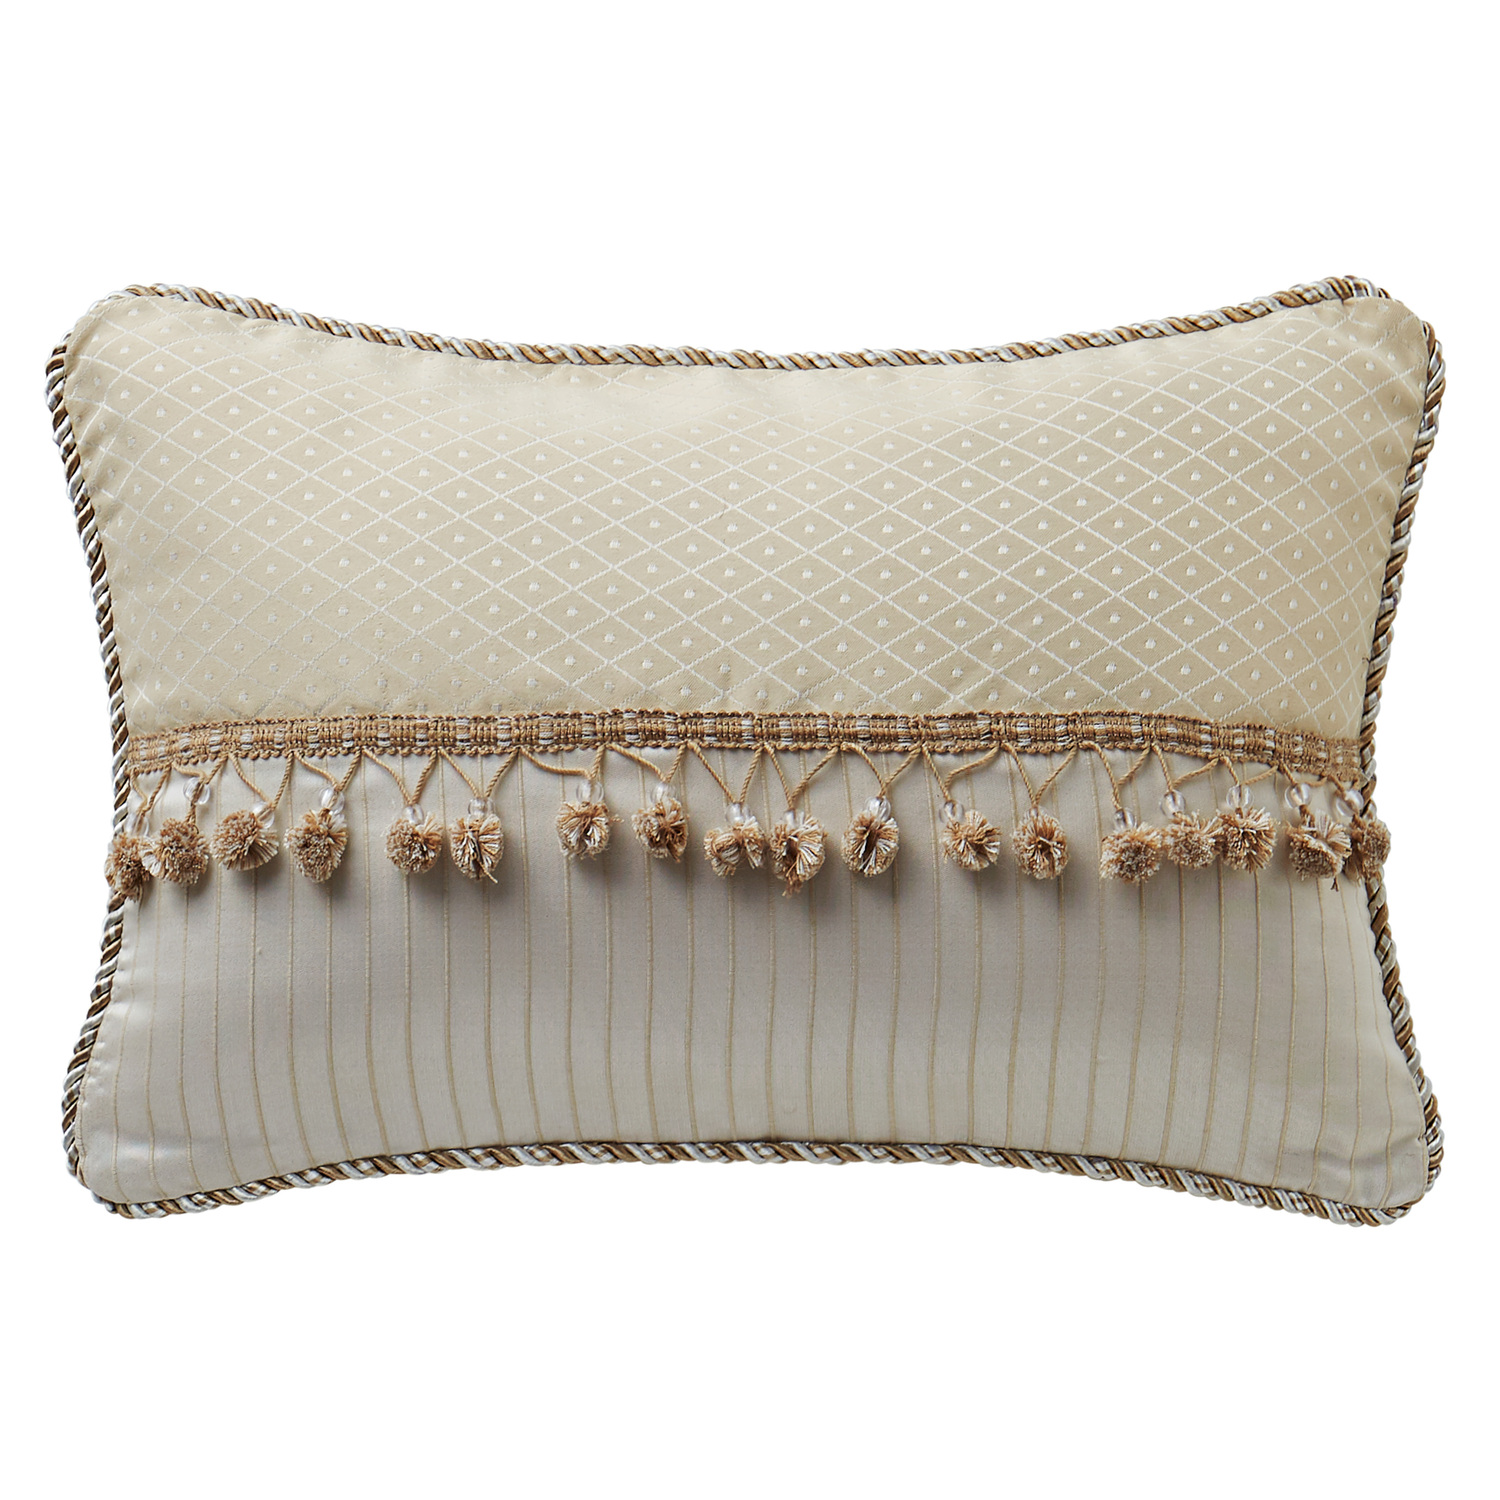 Landon Gold By Waterford Luxury Bedding